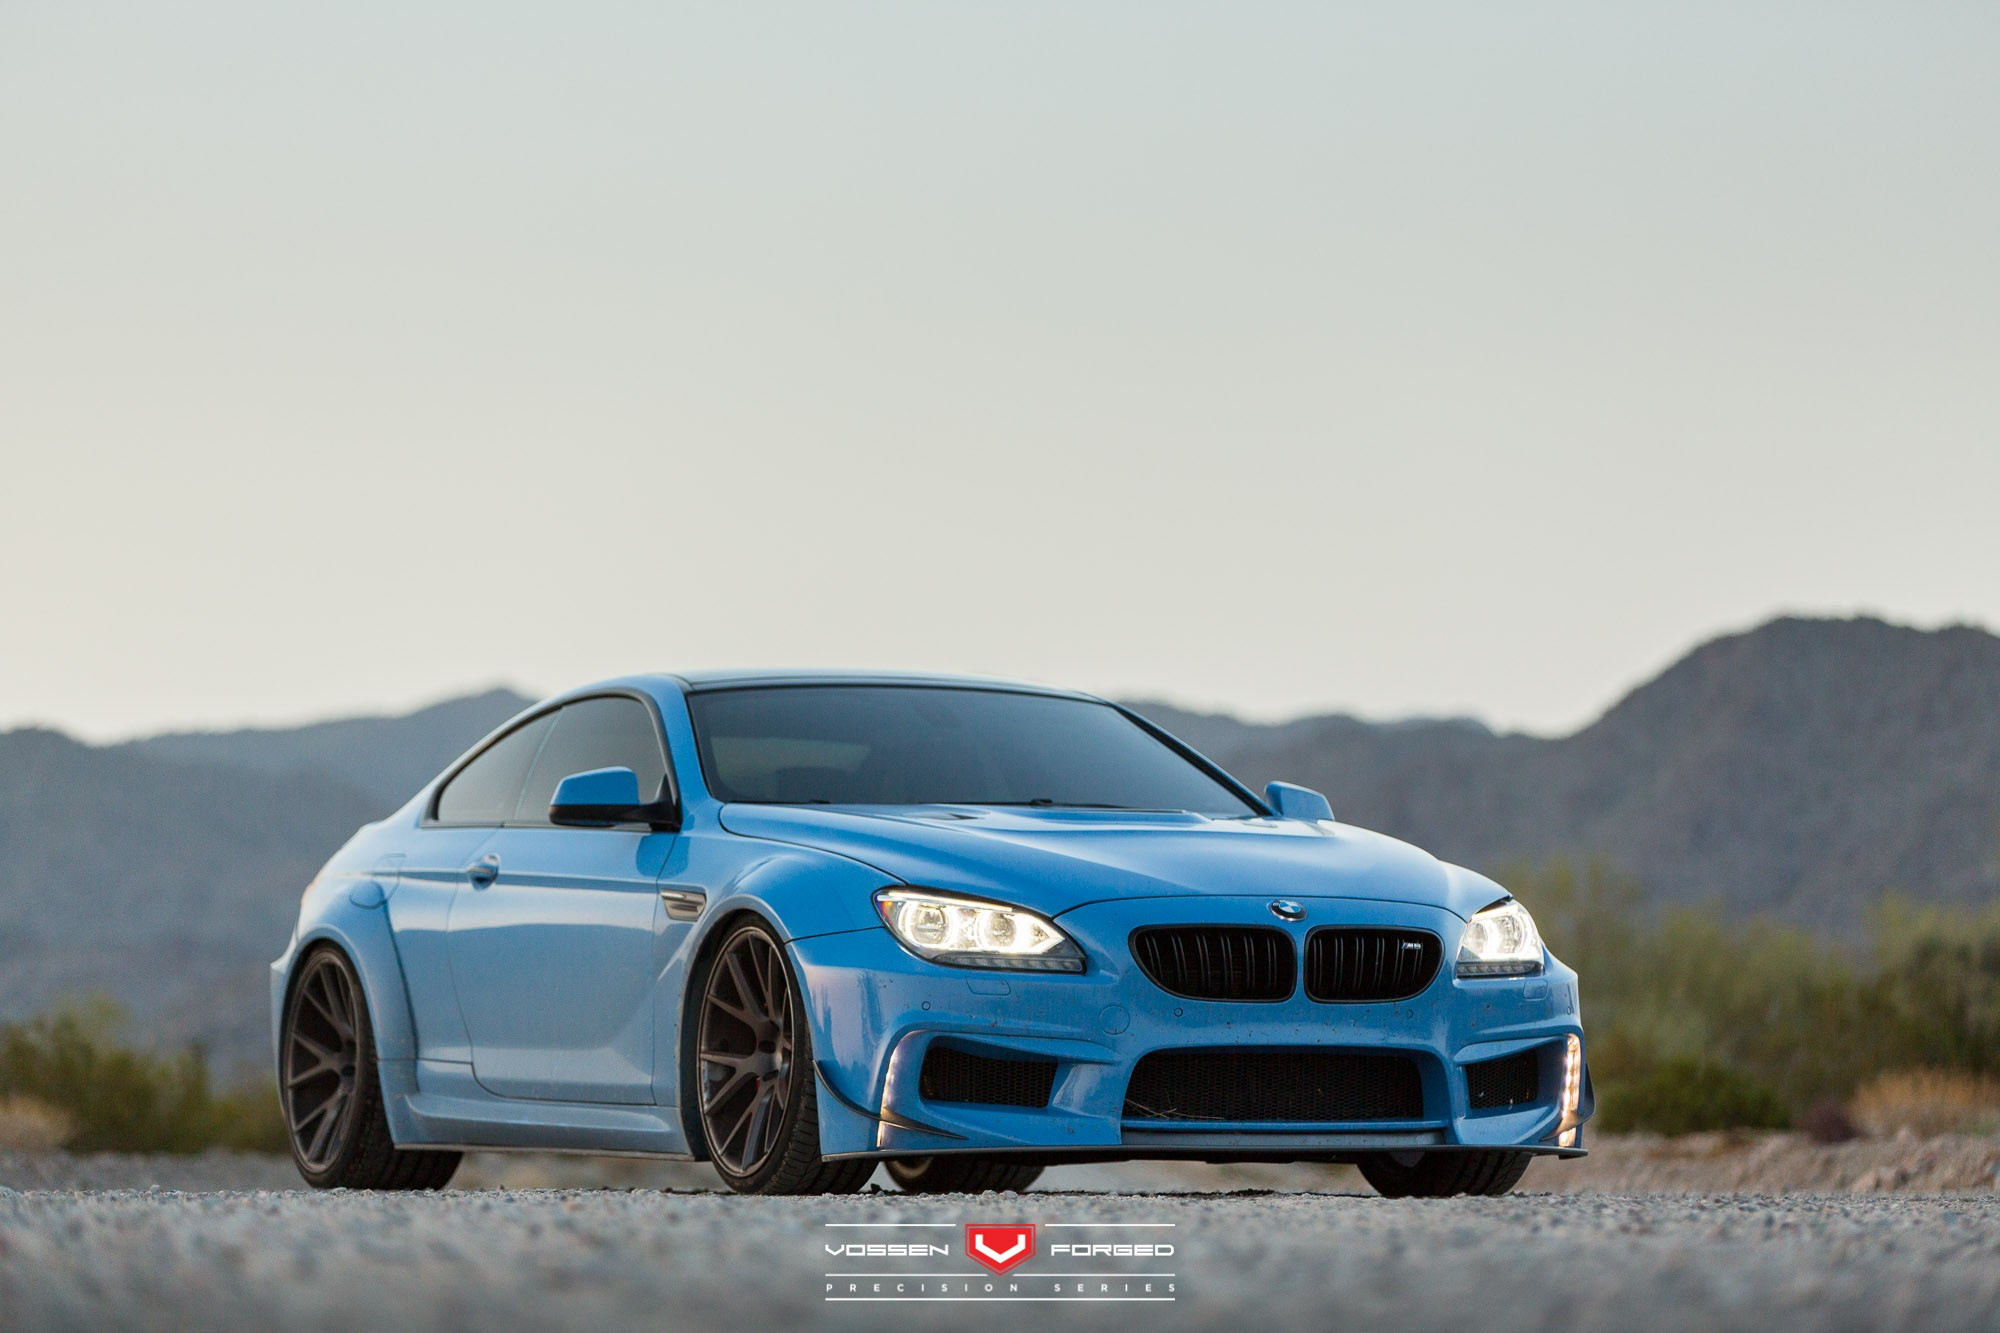 Yas Marina Blue Bmw 650i With Prior Widebody Kit And Vossen Wheels Autoevolution